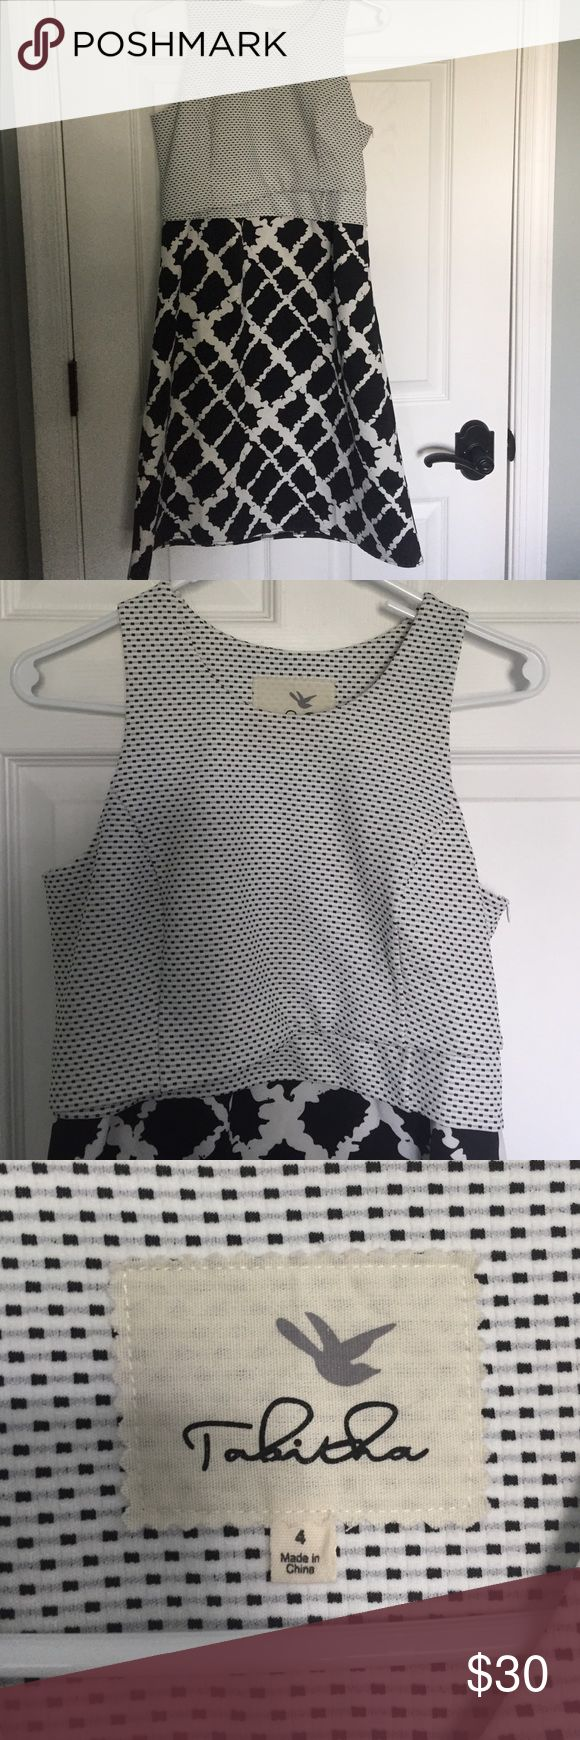 Anthropologie Black and White Dress NWOT. Purchased a size up to wear as a maternity dress and ended up delivering early. The chest area with smaller print is fitted and very flattering, but the body of the dress is A-line and very forgiving. Great dress for special occasions or work! Anthropologie Dresses